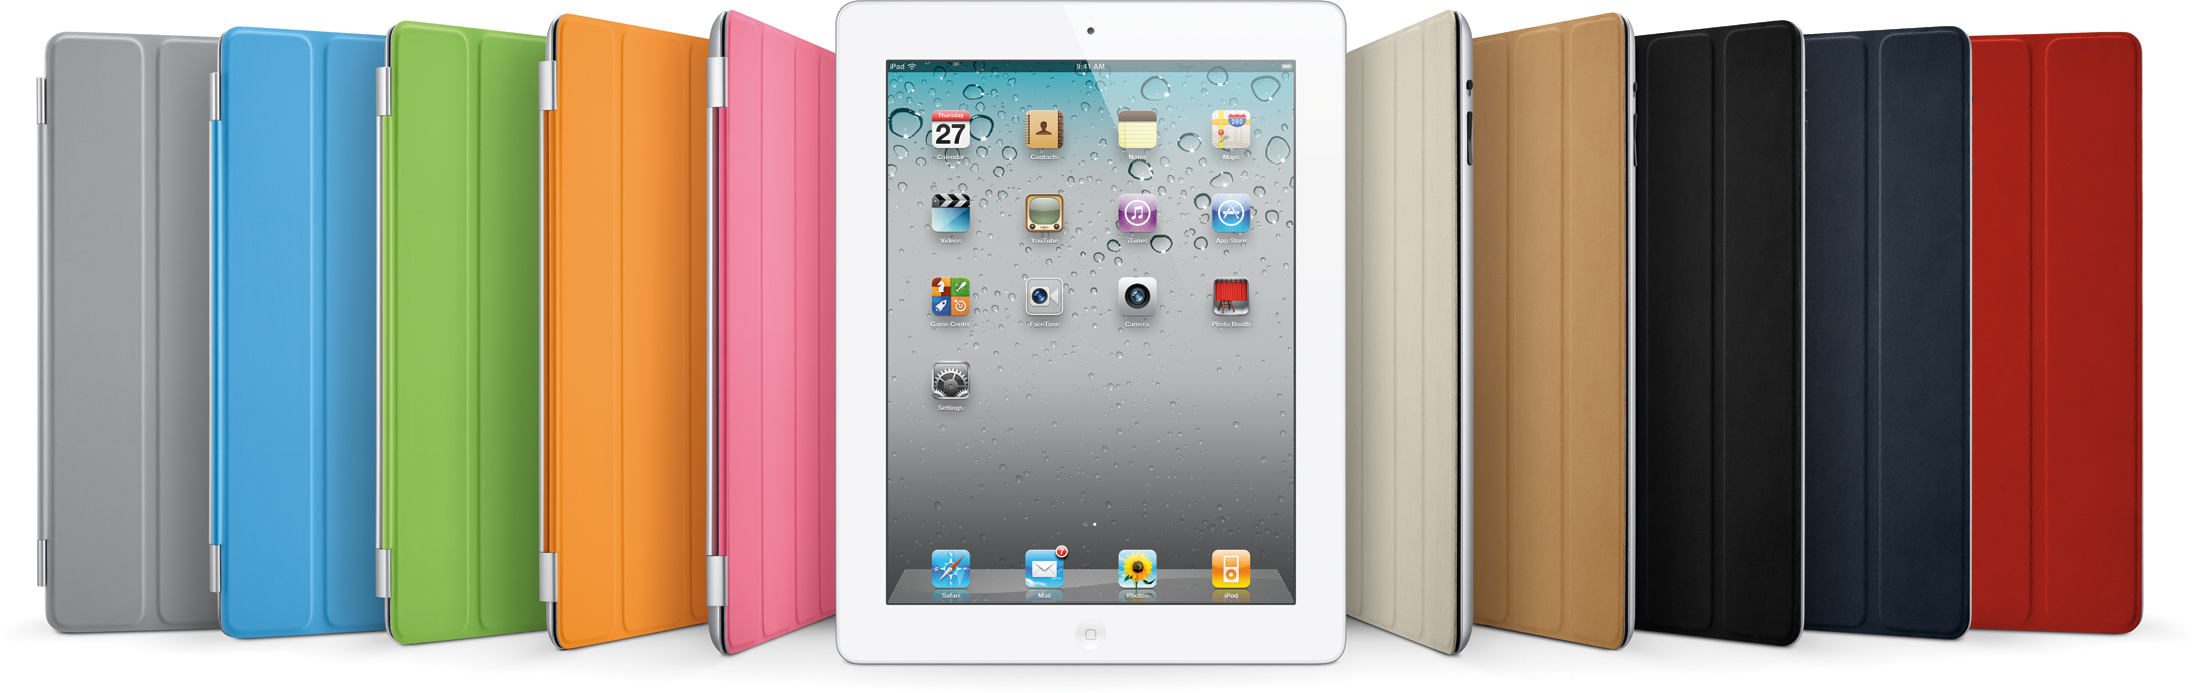 iPad 2 com Smart Covers (capas) coloridas